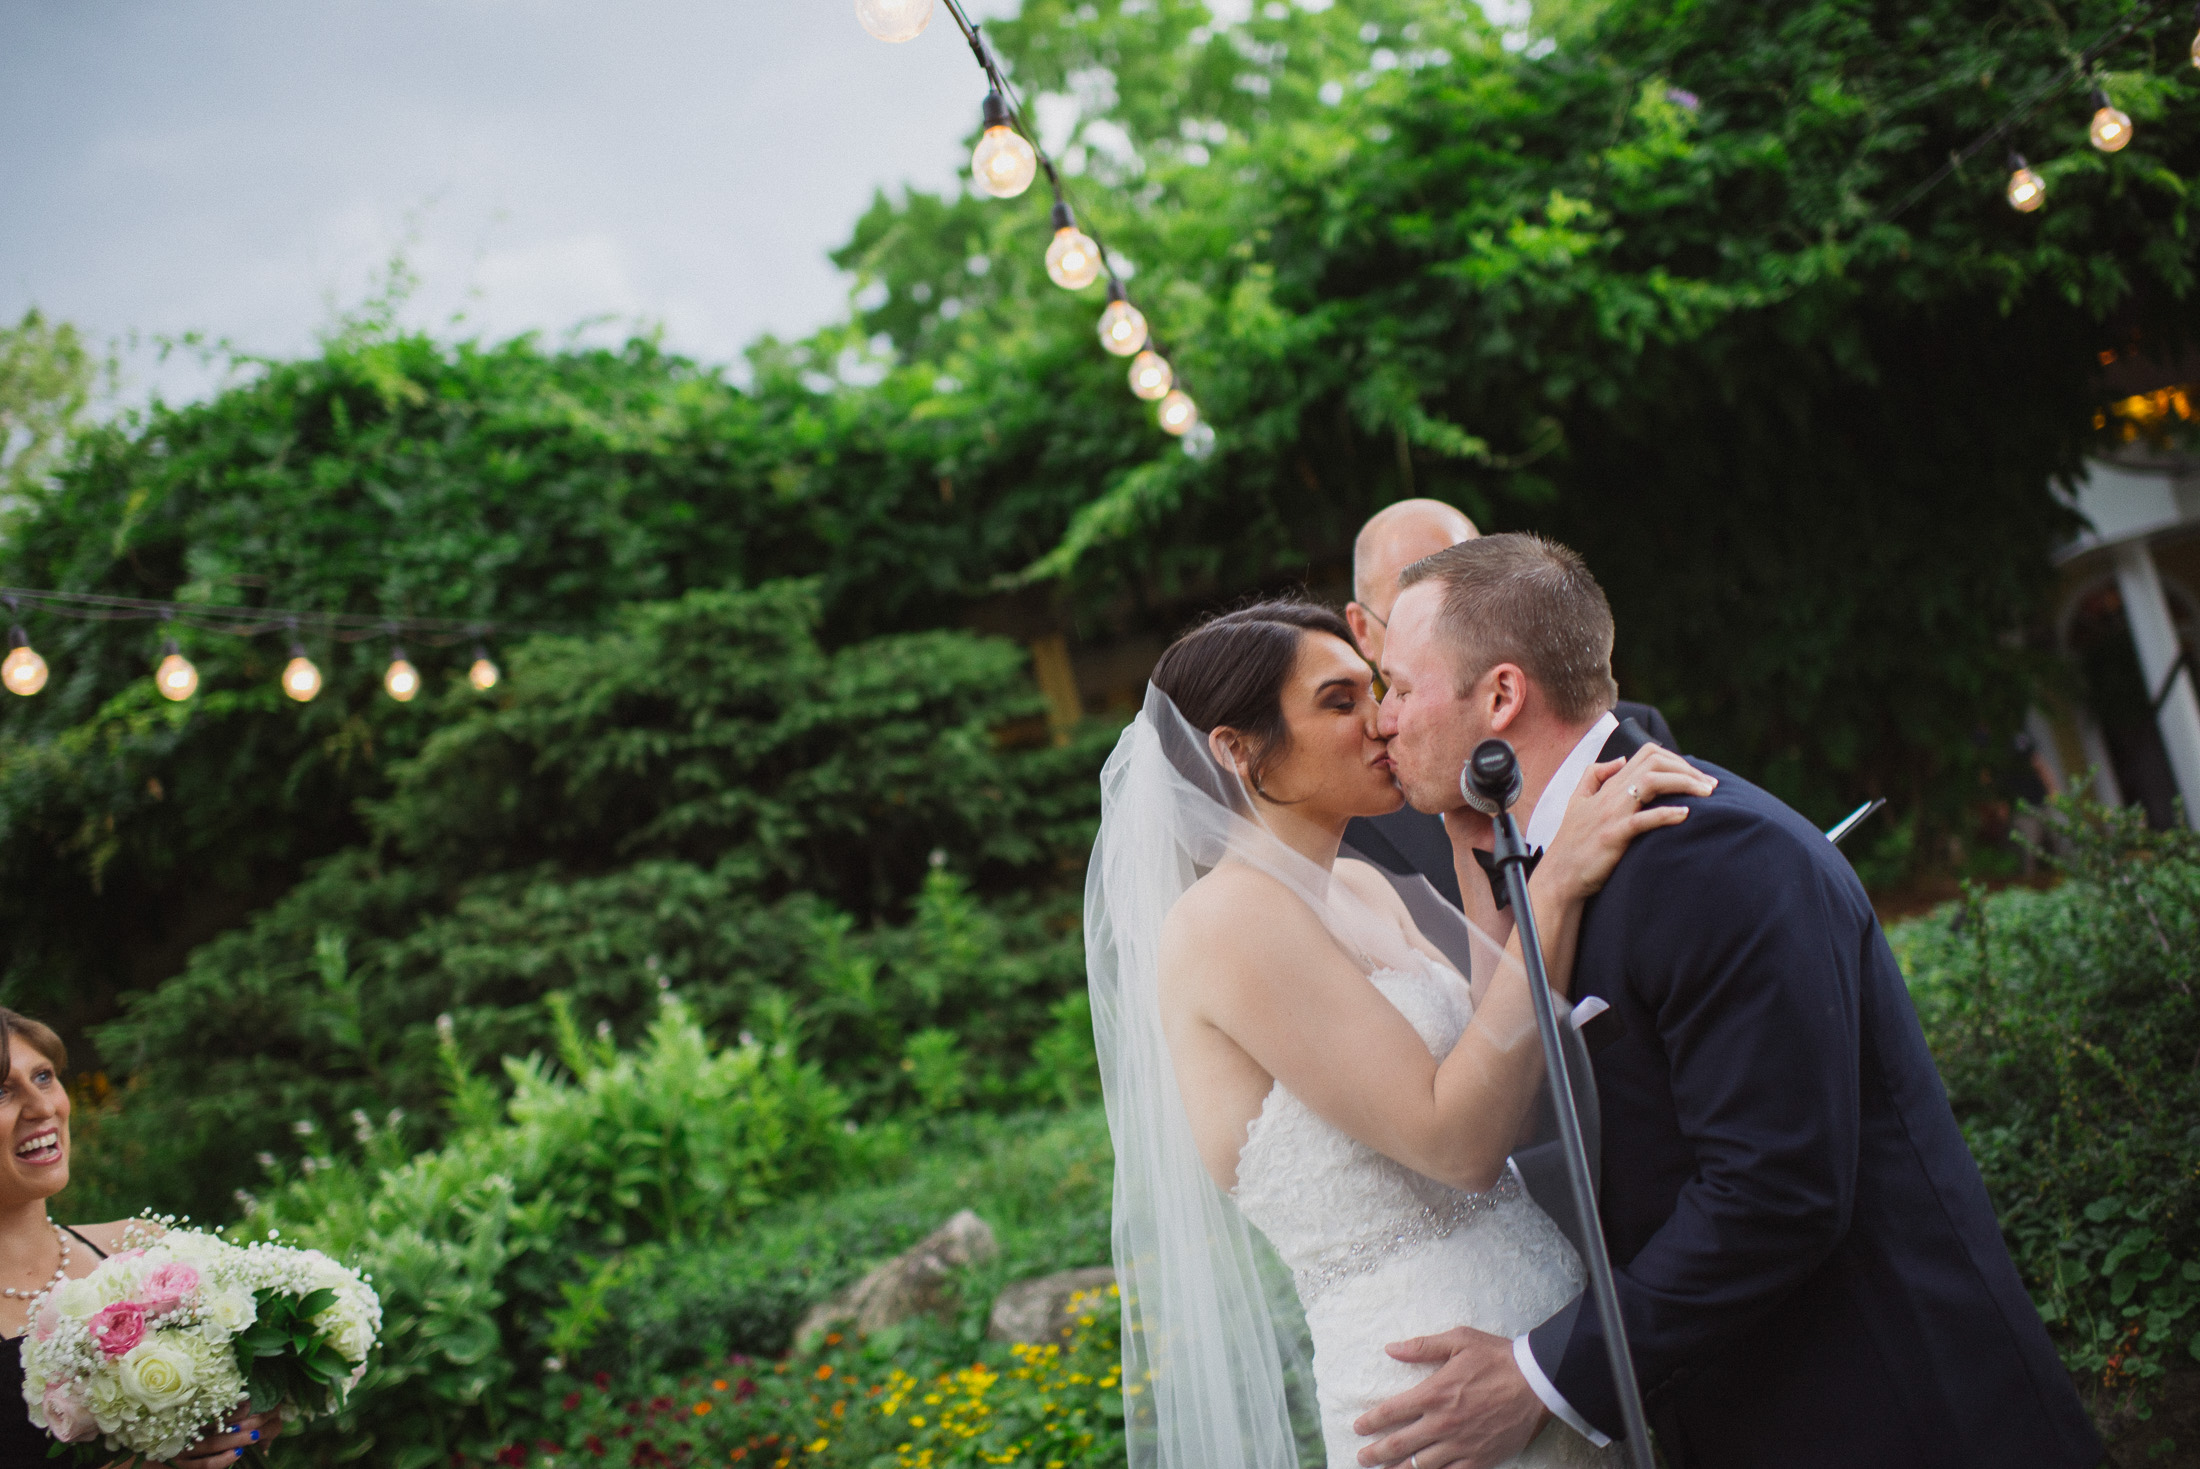 NH Wedding Photography: ceremony in Bedford NH